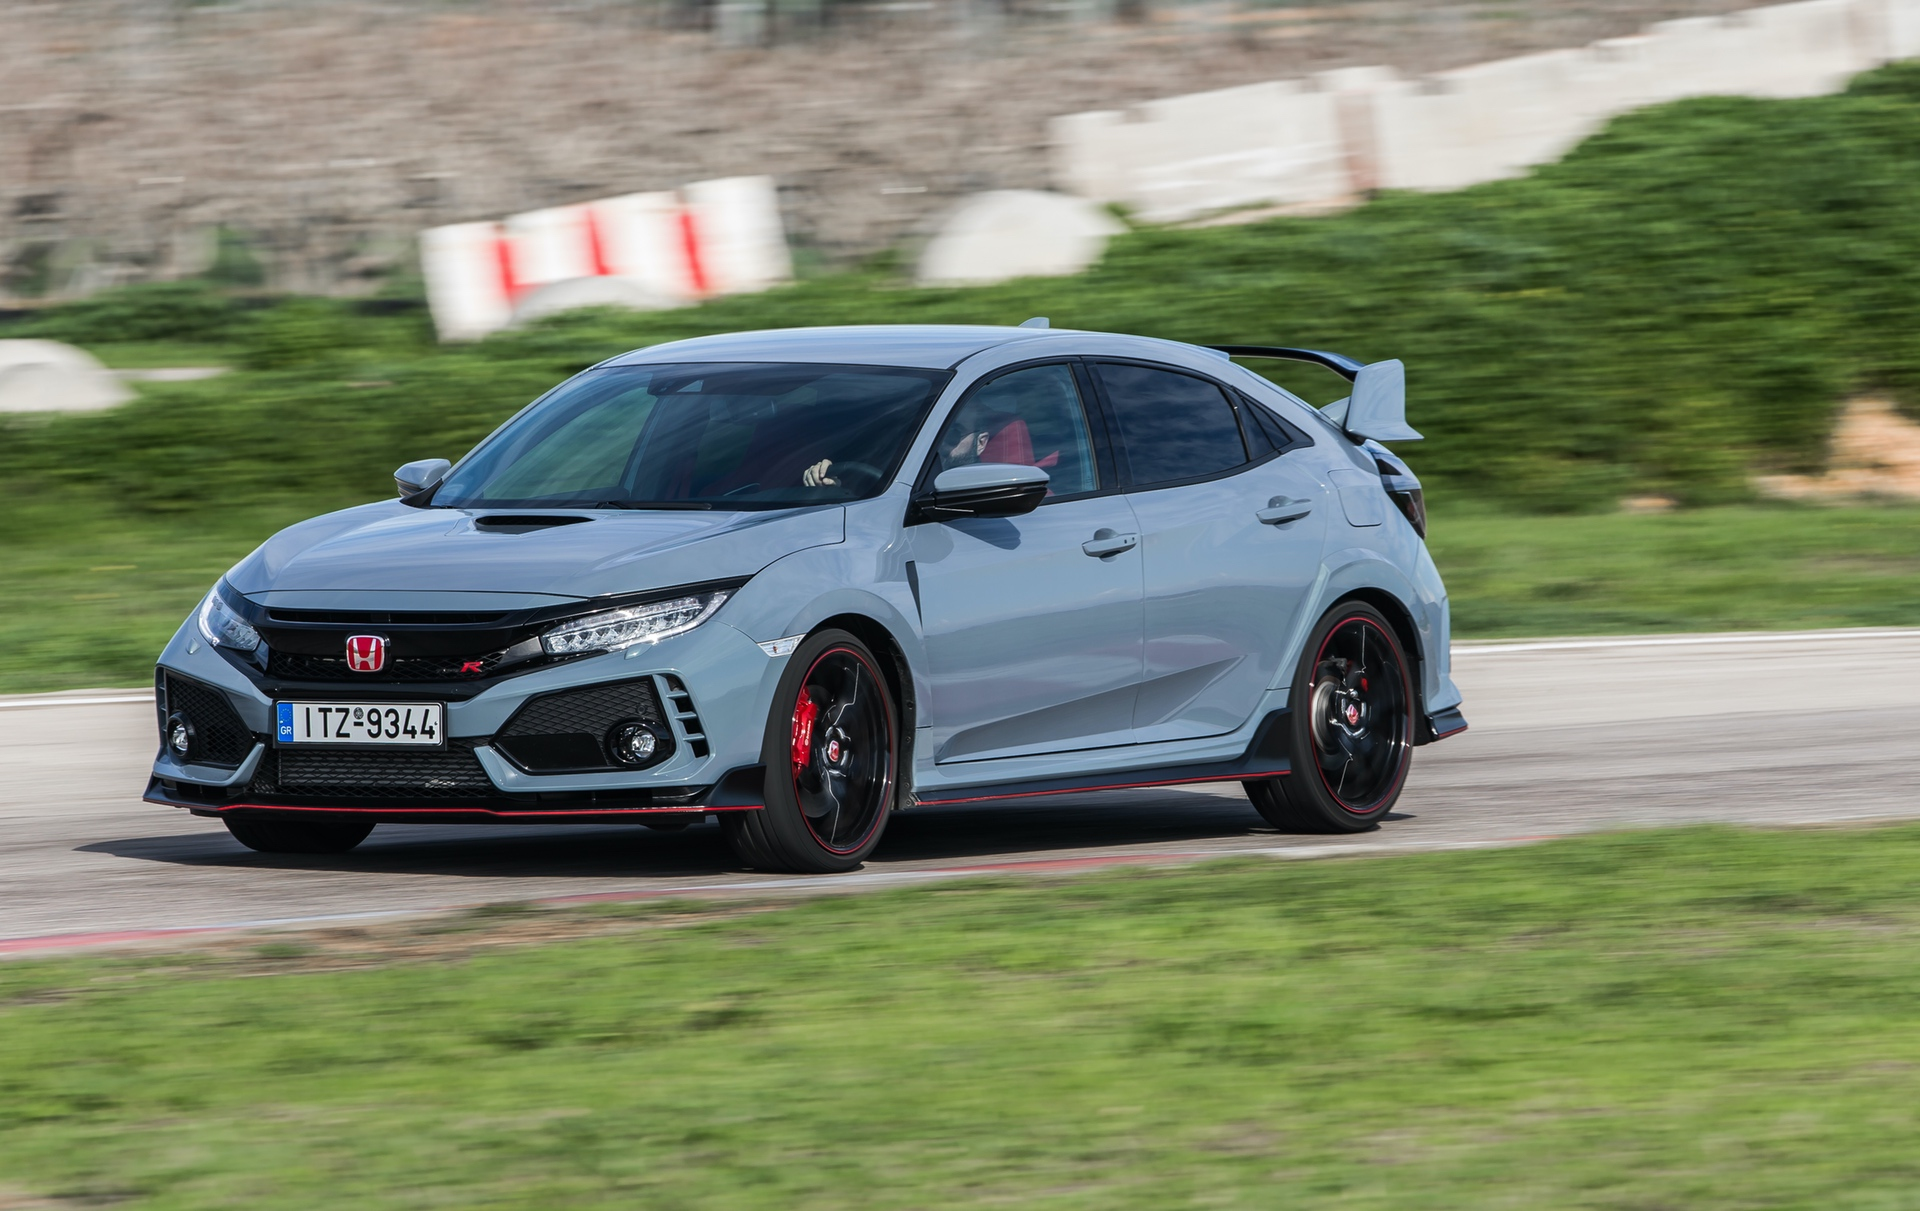 Track_Test_Honda_Civic_Type_R_071